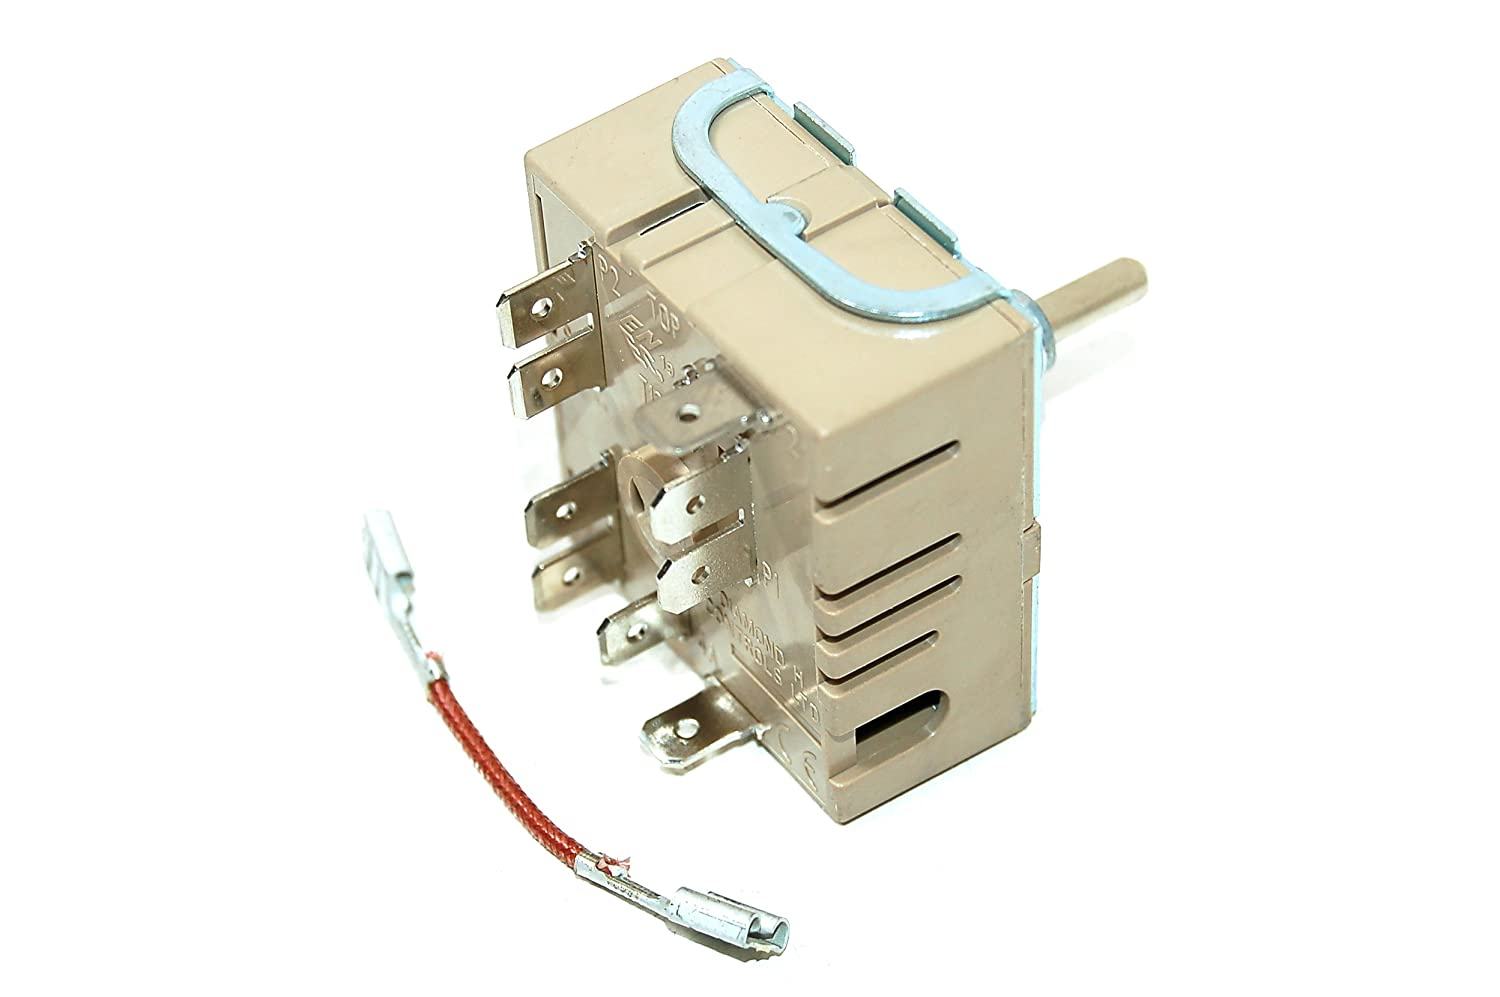 Creda C00225672 Belling Creda Hotpoint Hob Single Energy Regulator Switch. Genuine part number C00225672, [Energy Class A+++]